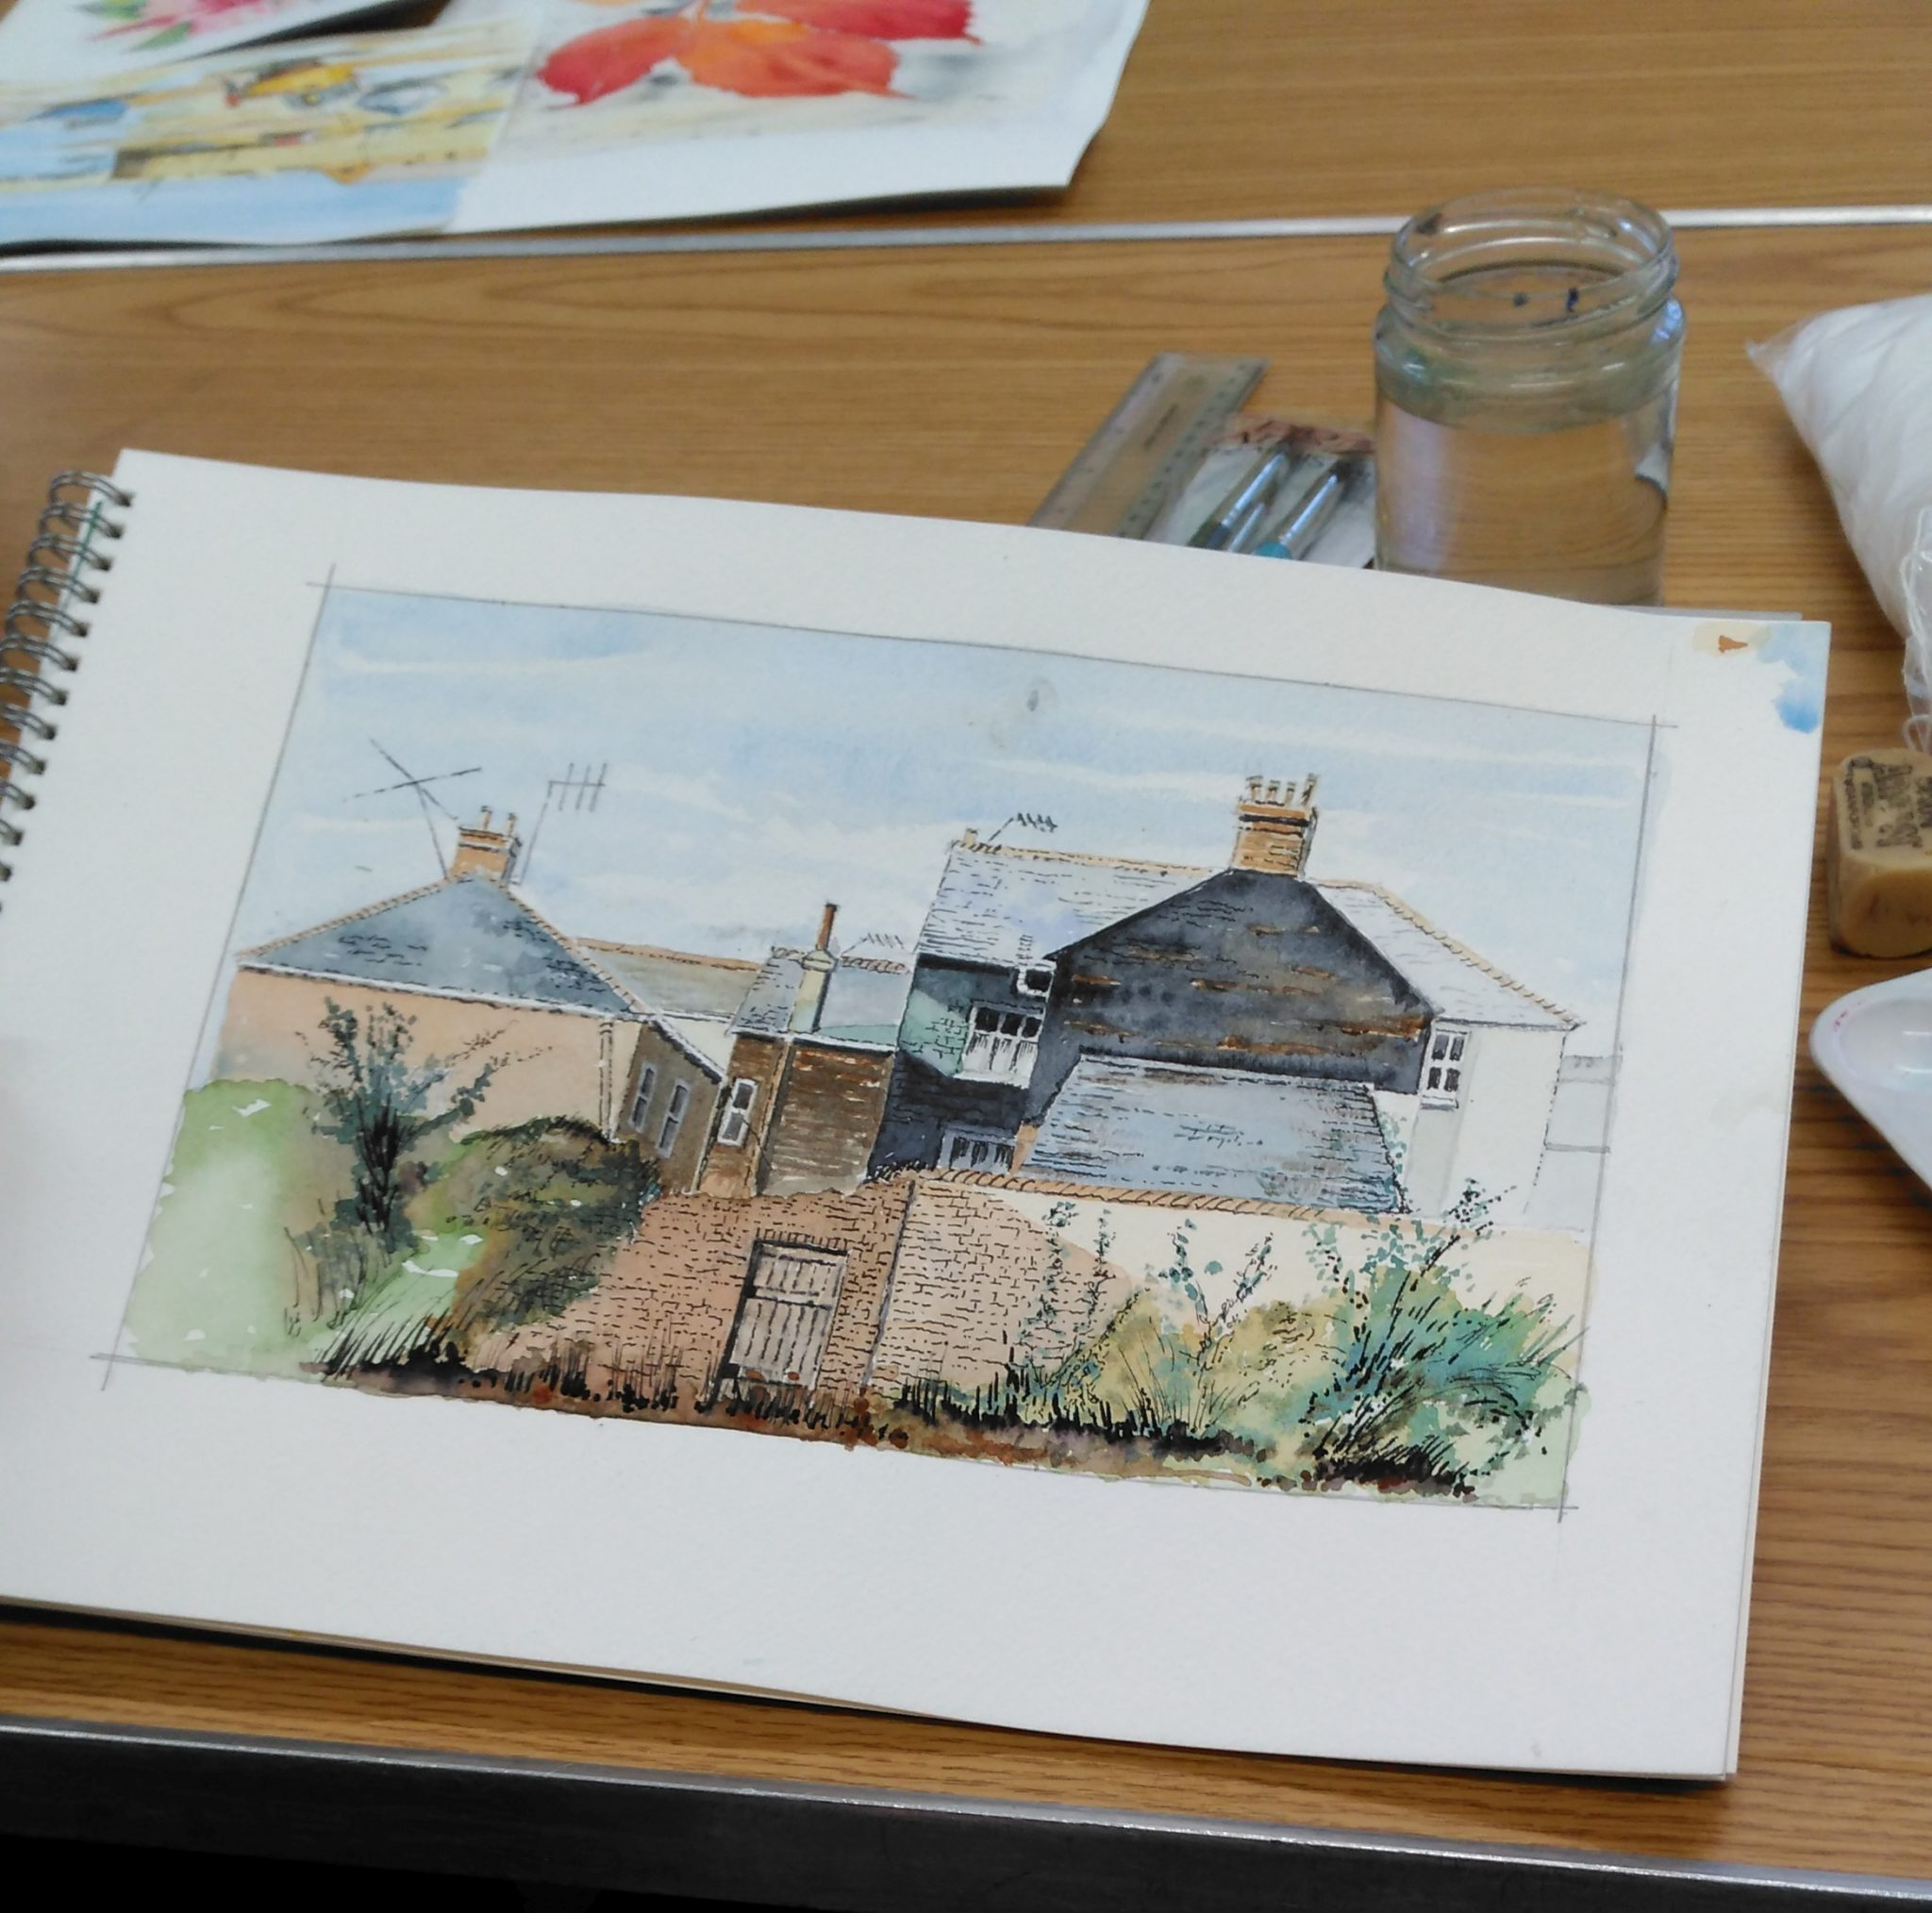 A sketch pad open to a page with a painting of terraced houses.